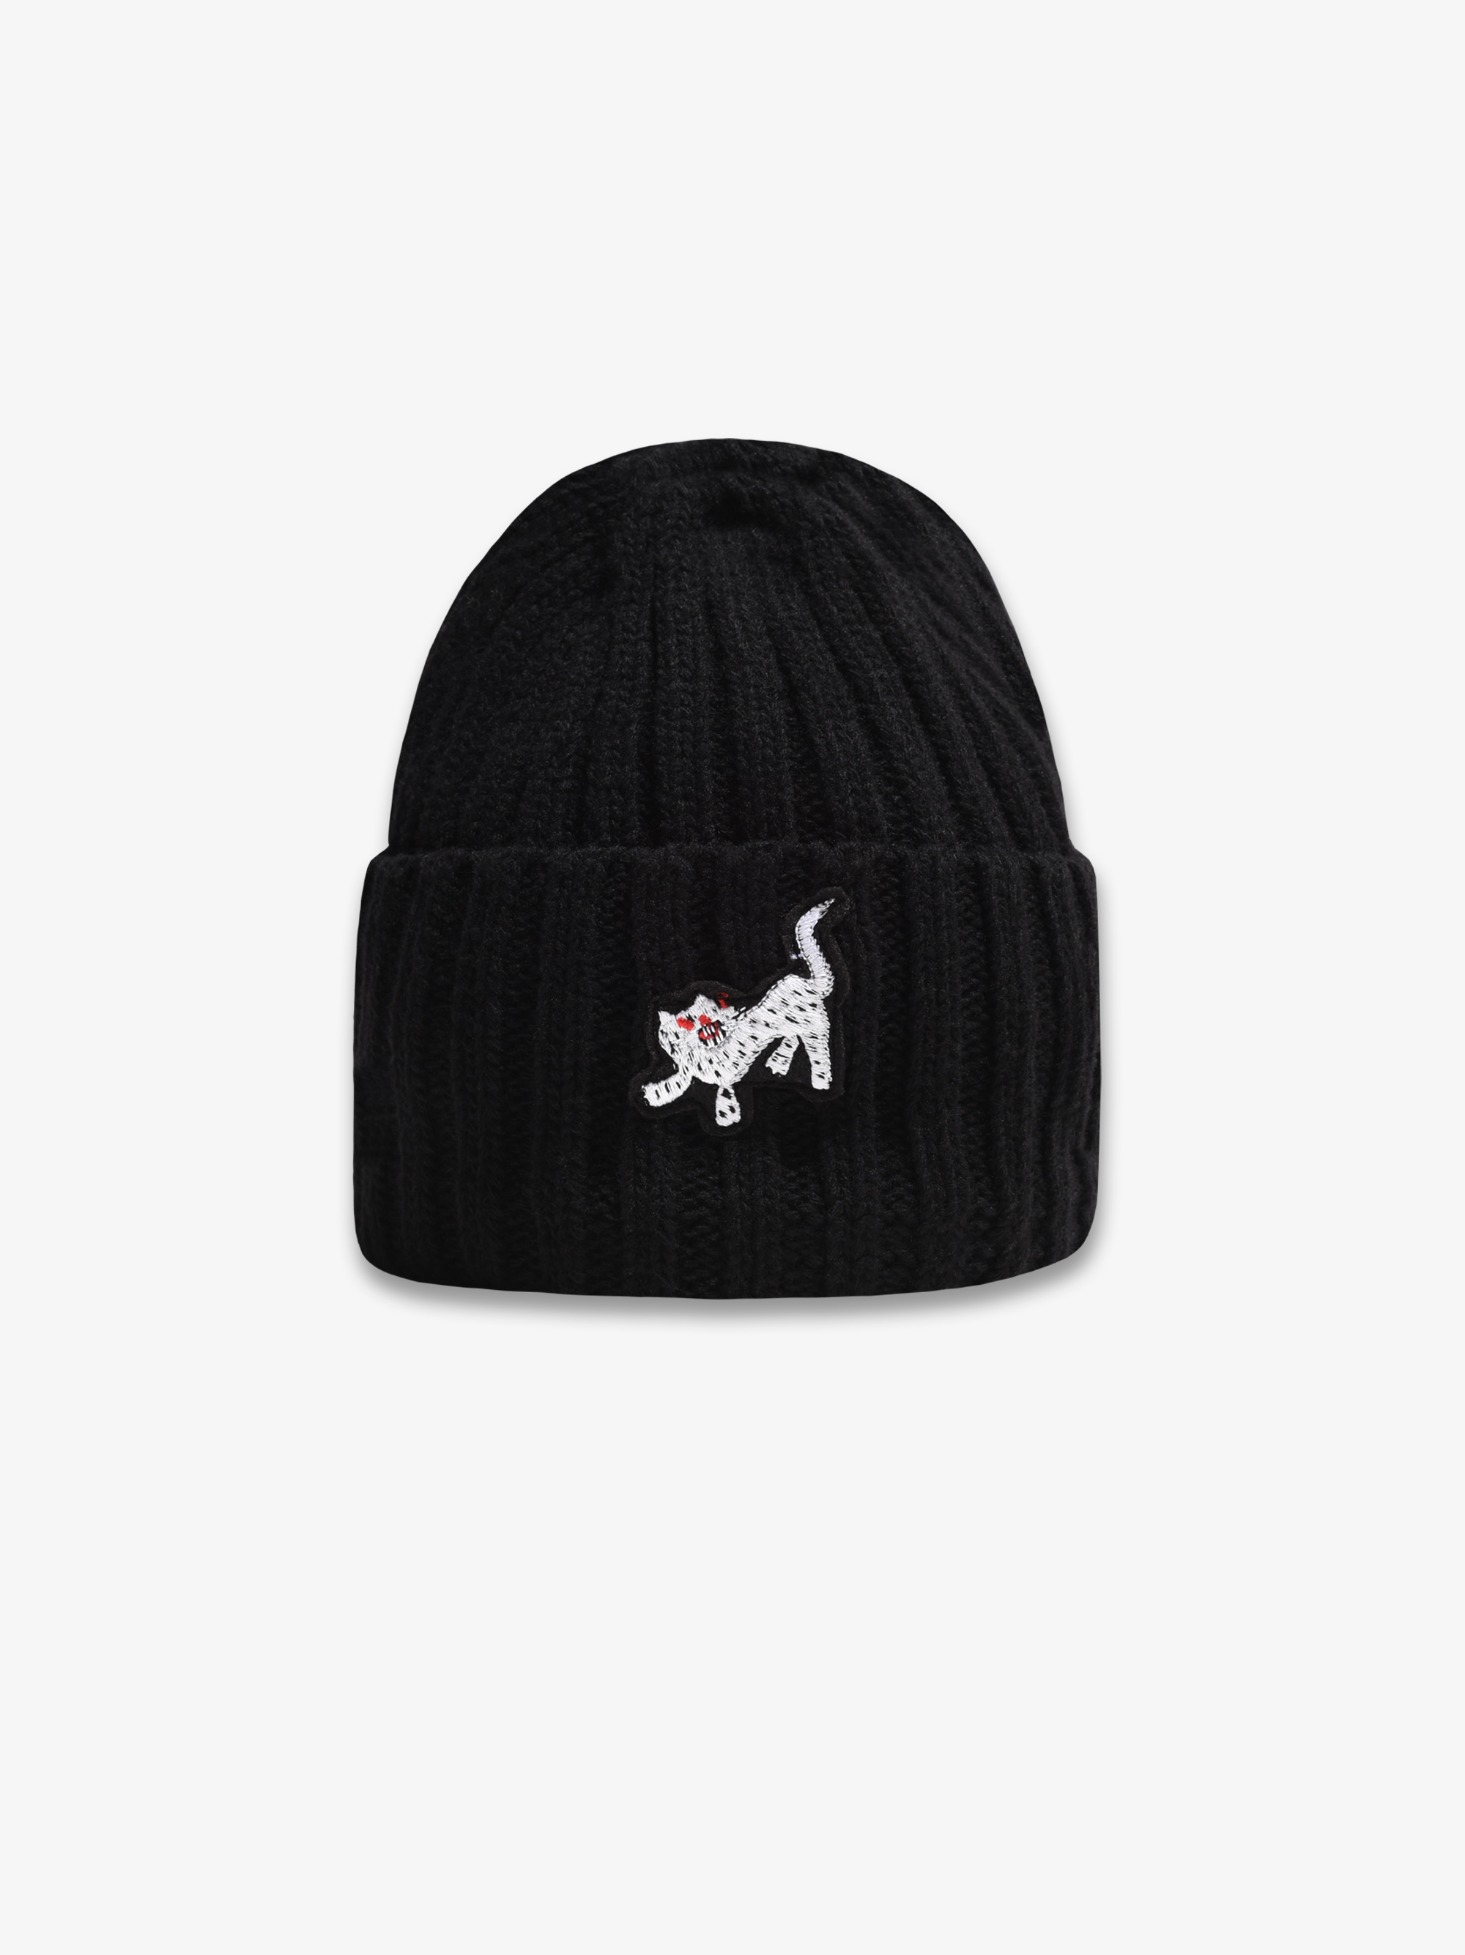 LAMBS WOOL BEANIE (HOPYO BLACK) 시즌오프 75% 특별할인 45,000원 ->